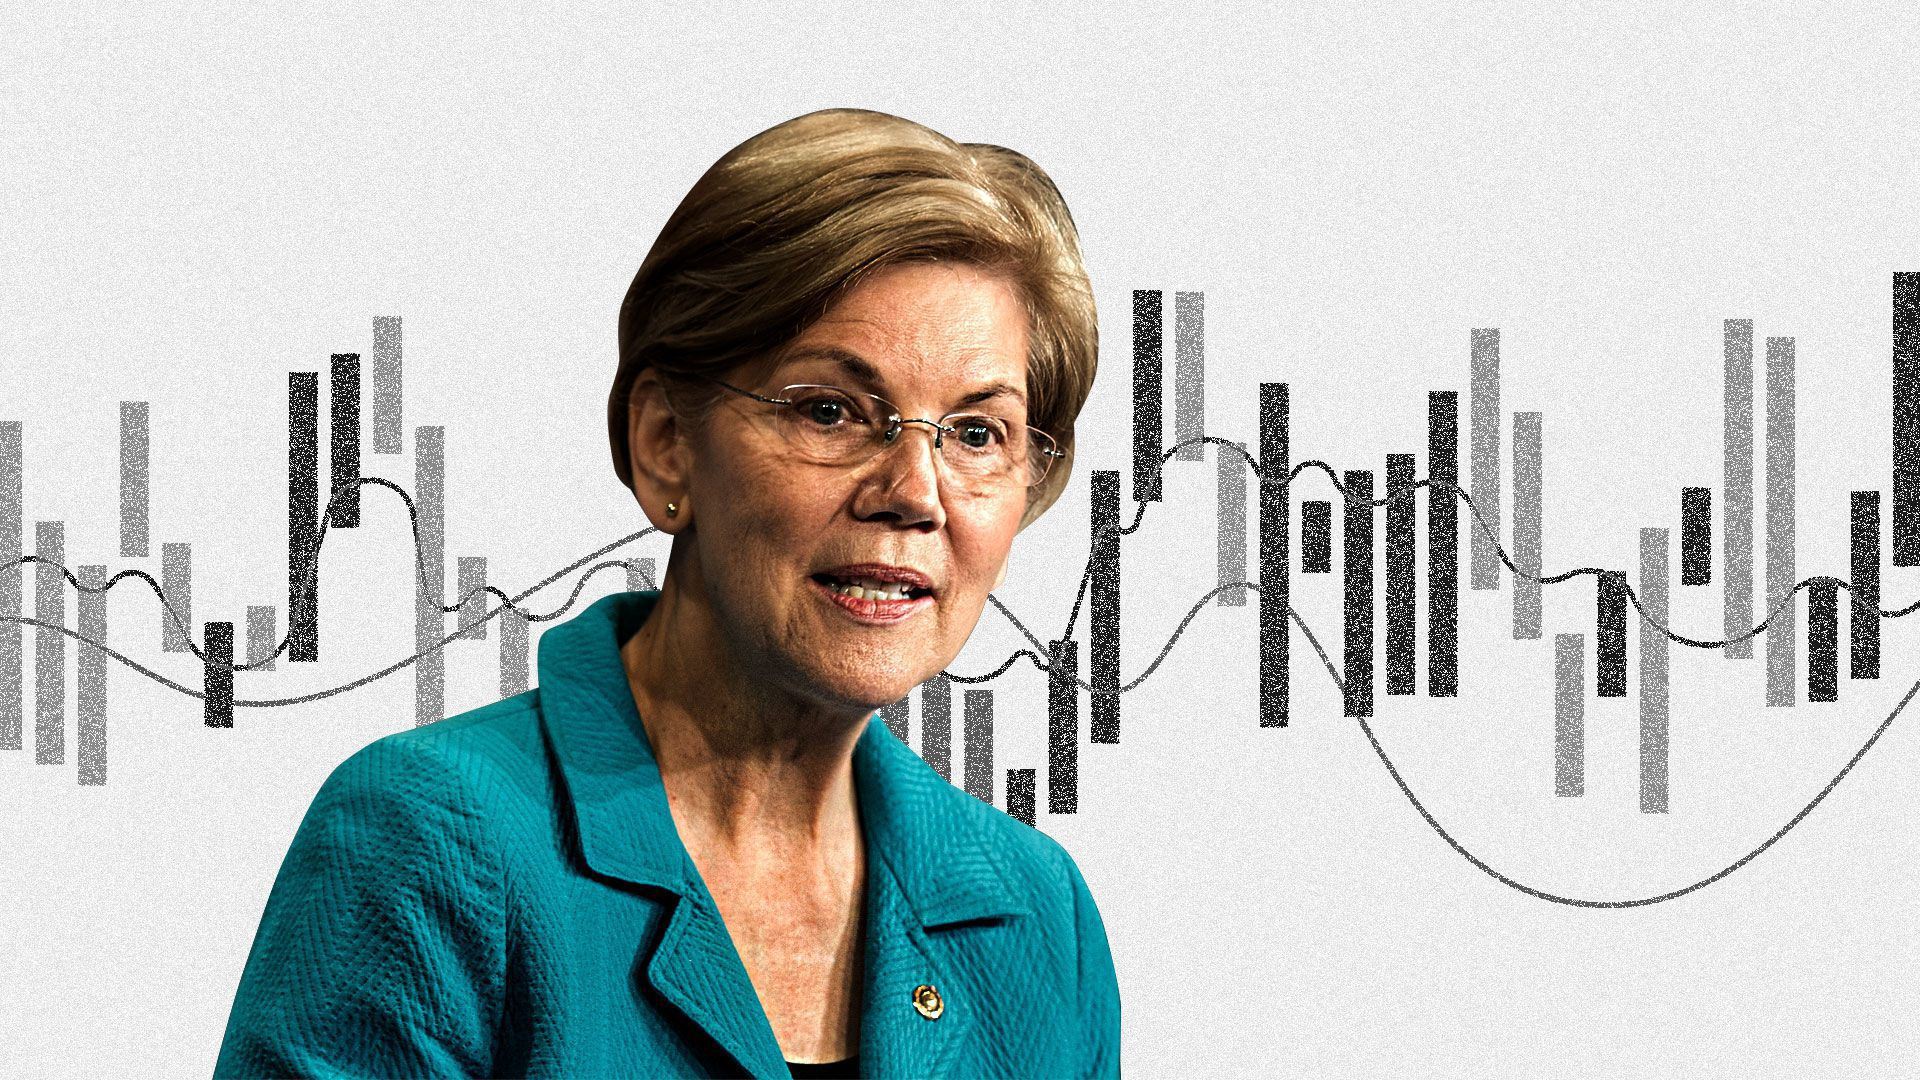 Elizabeth Warren surrounded buy complex charts